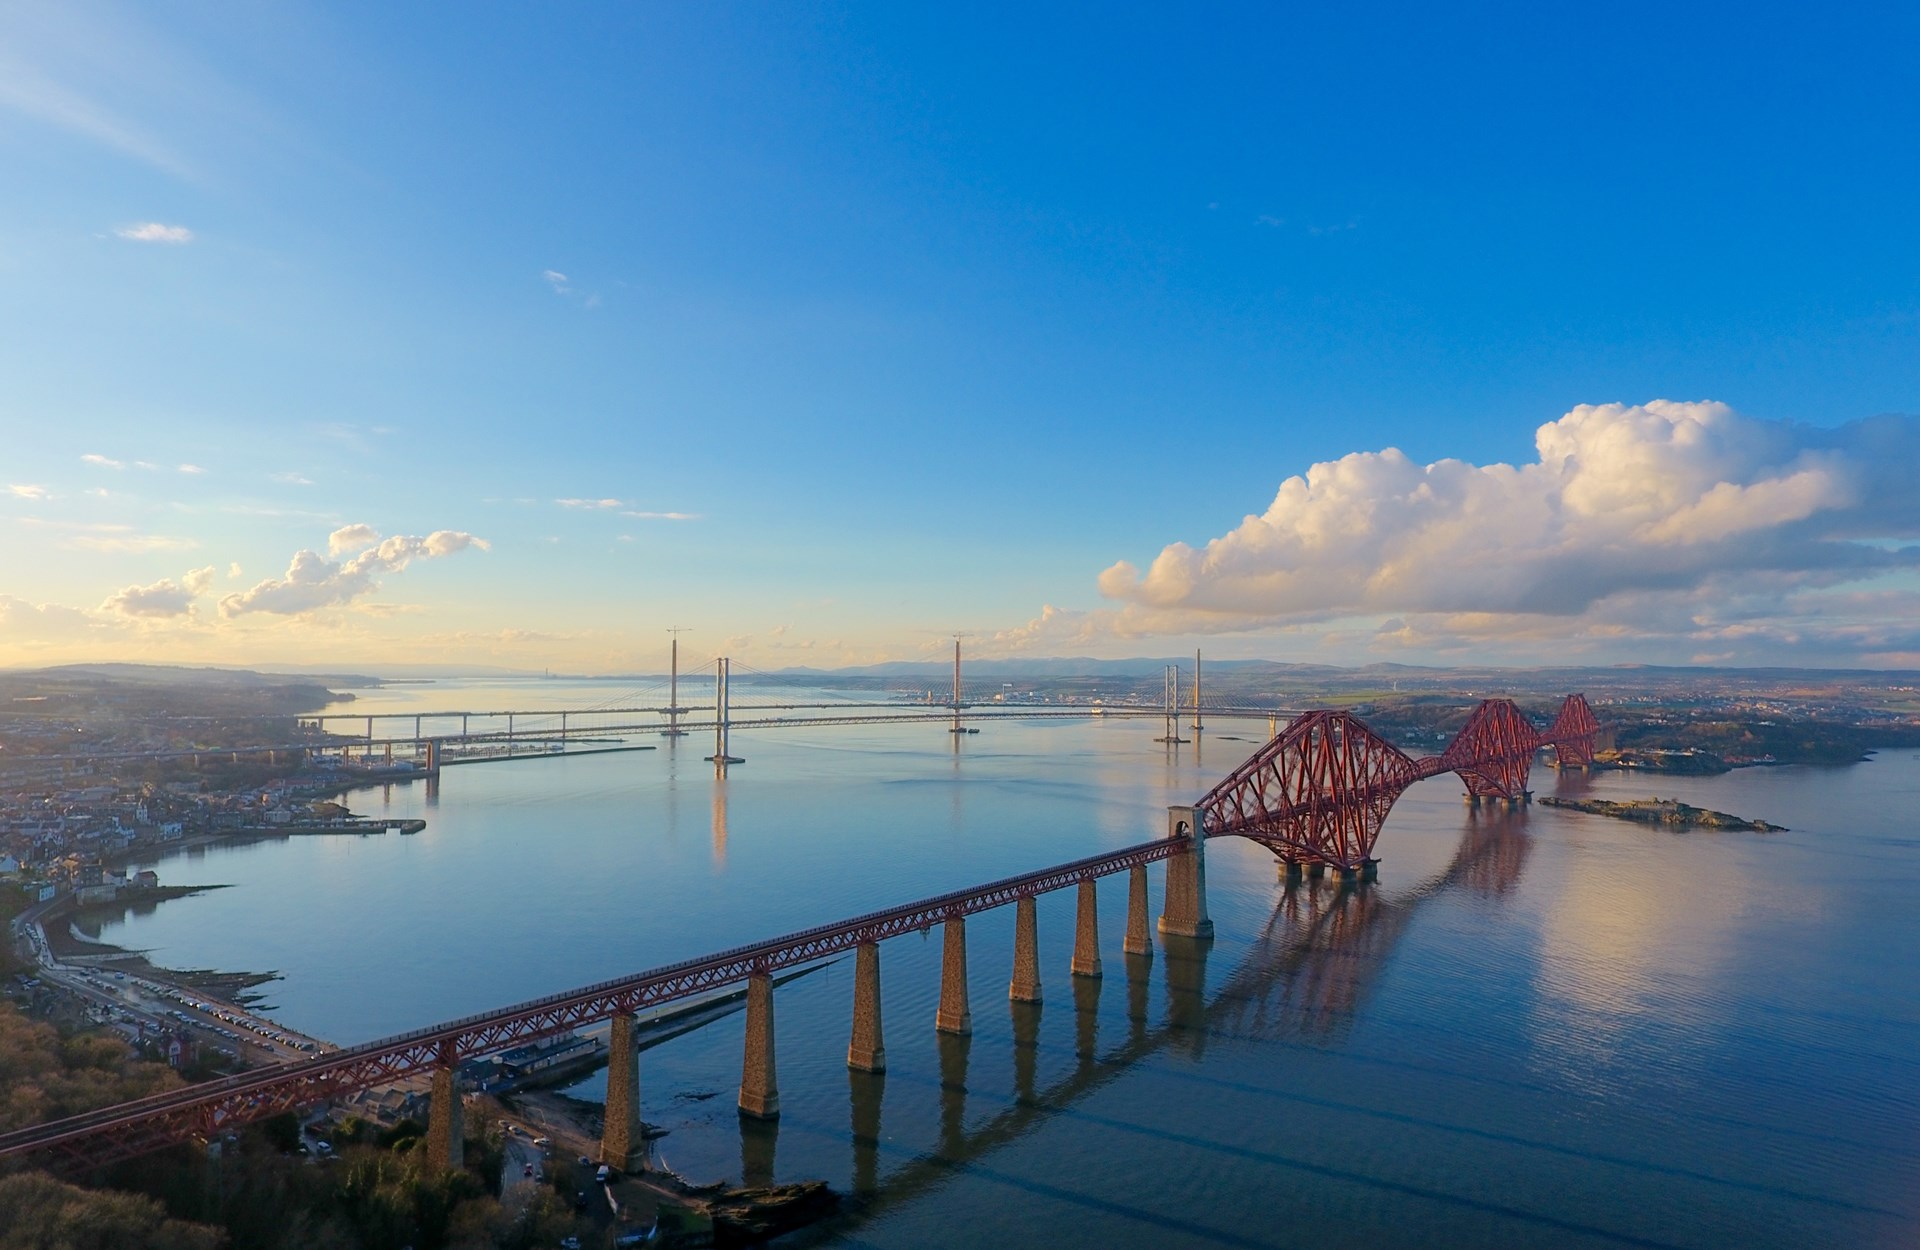 Arial photo of the Forth Bridges